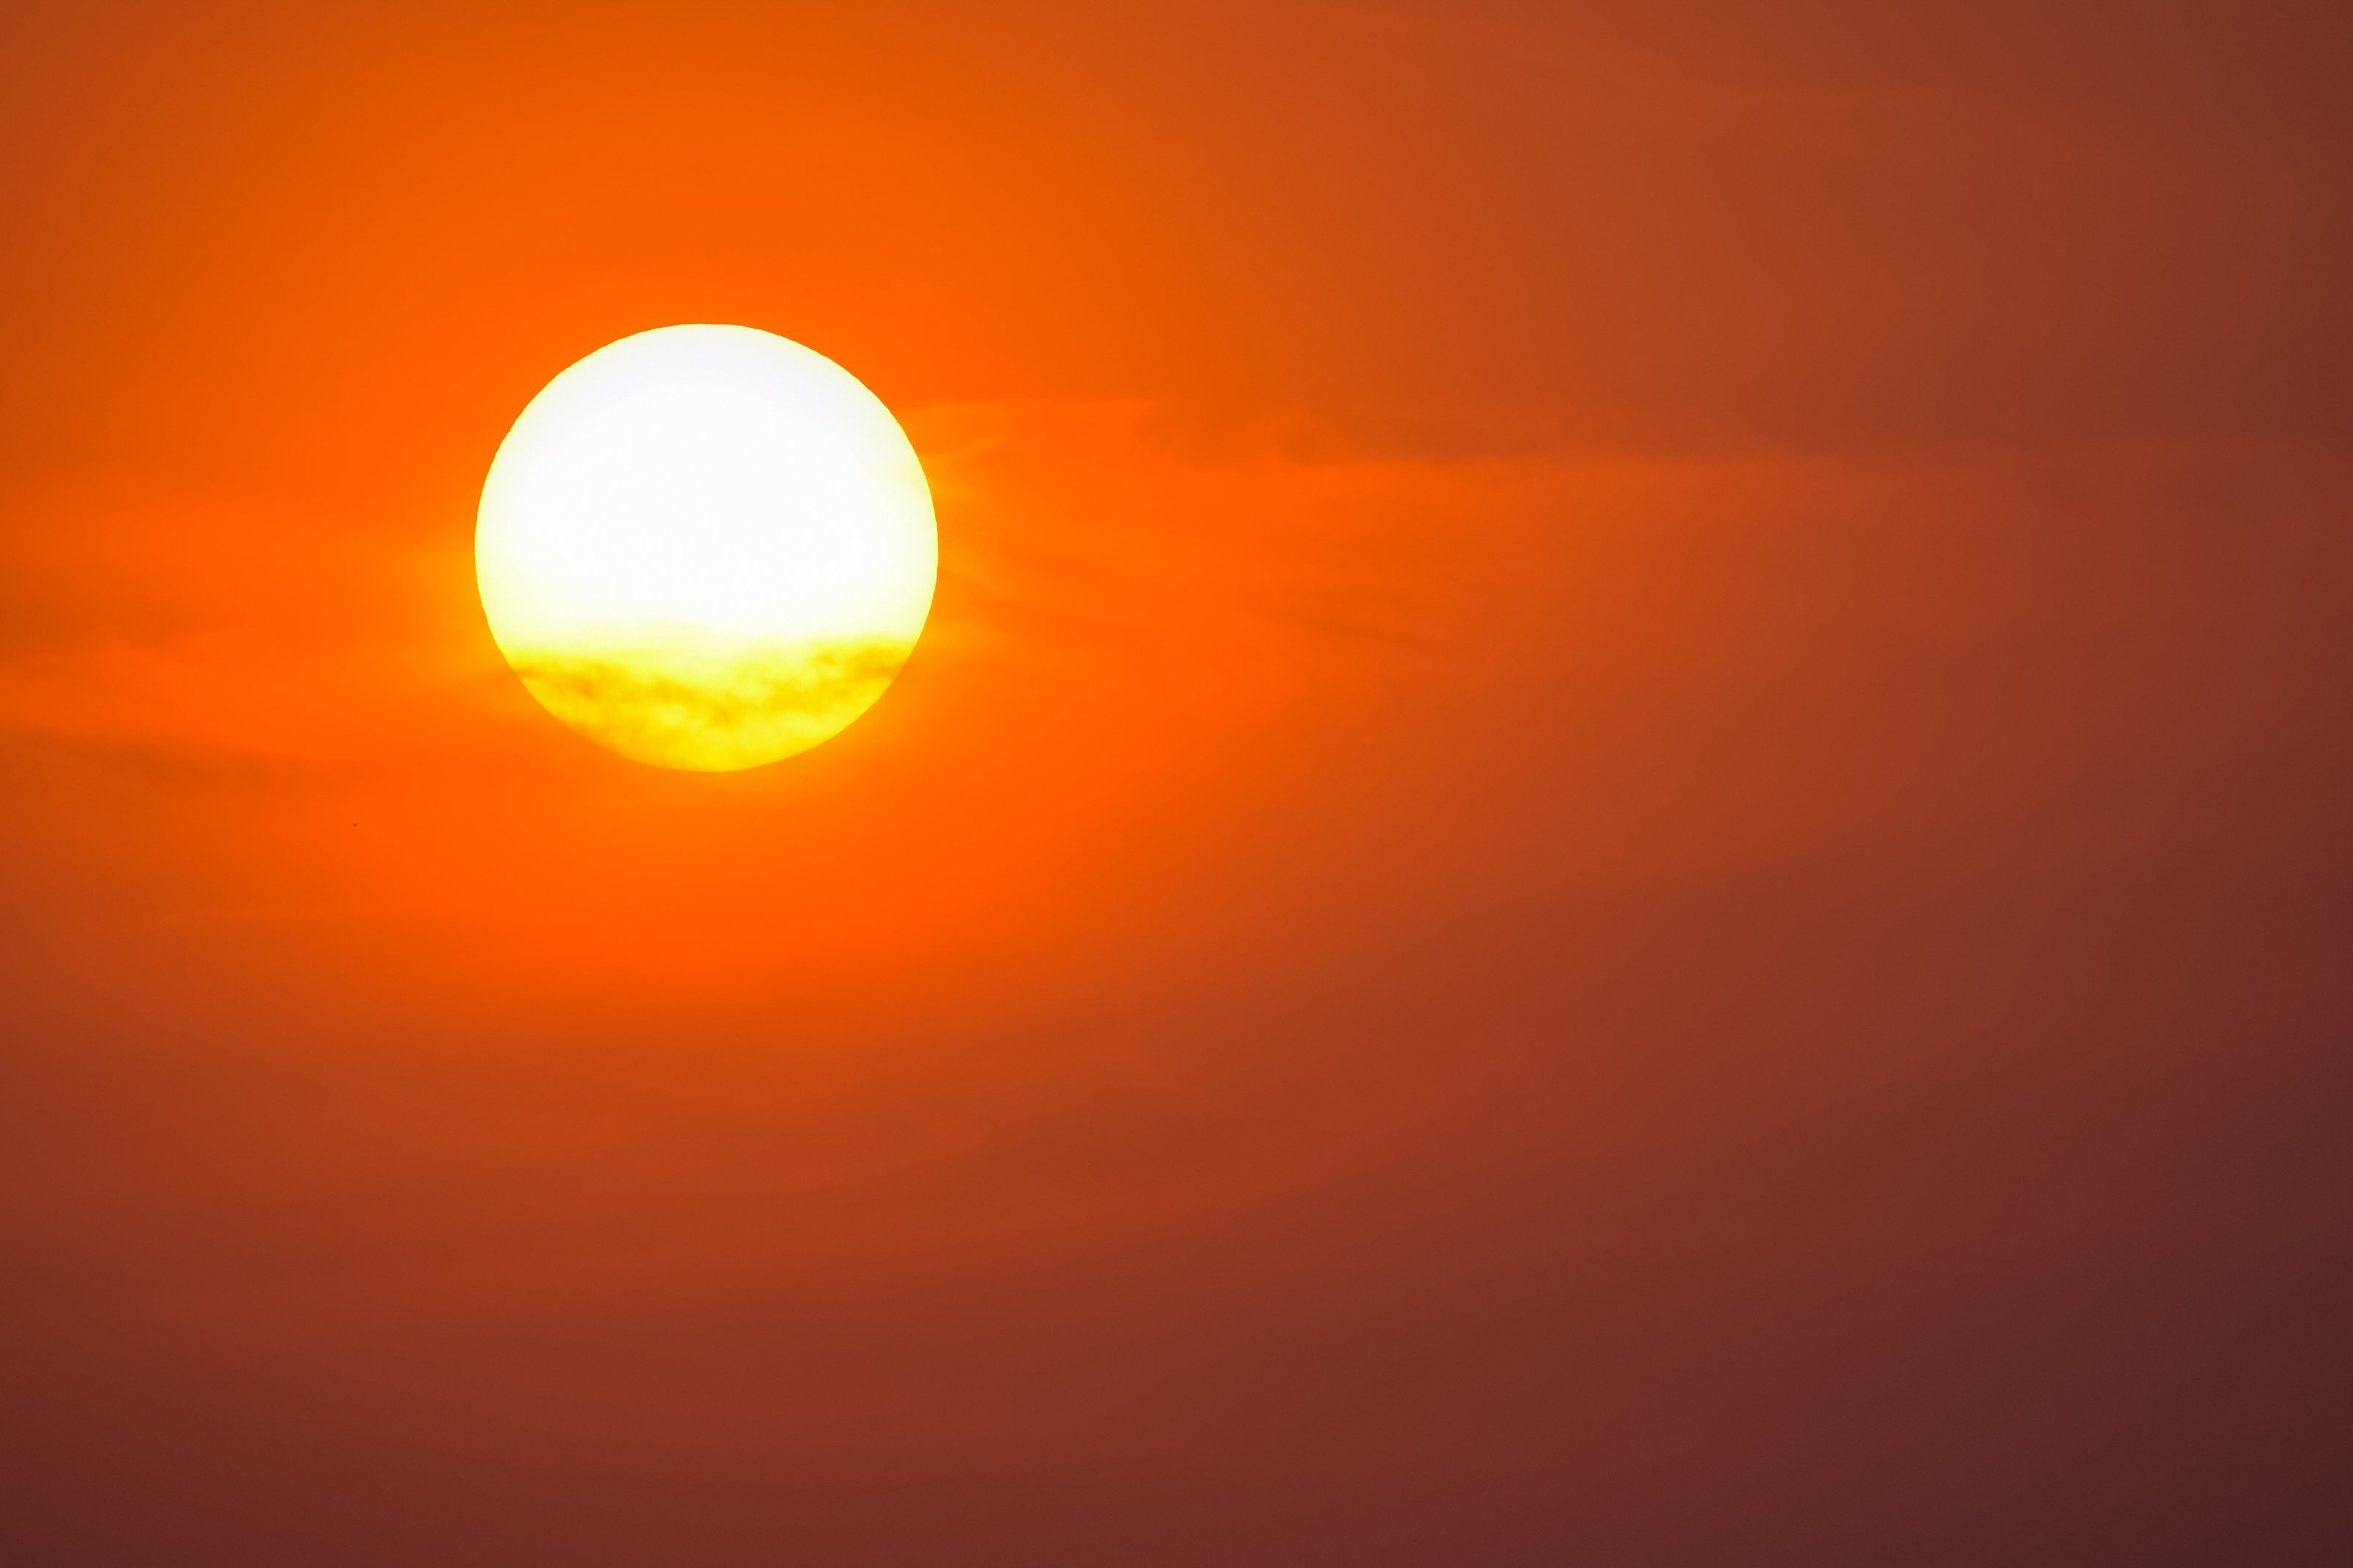 Worldwide, June 2019 was the hottest June ever, according to more than a century of weather records